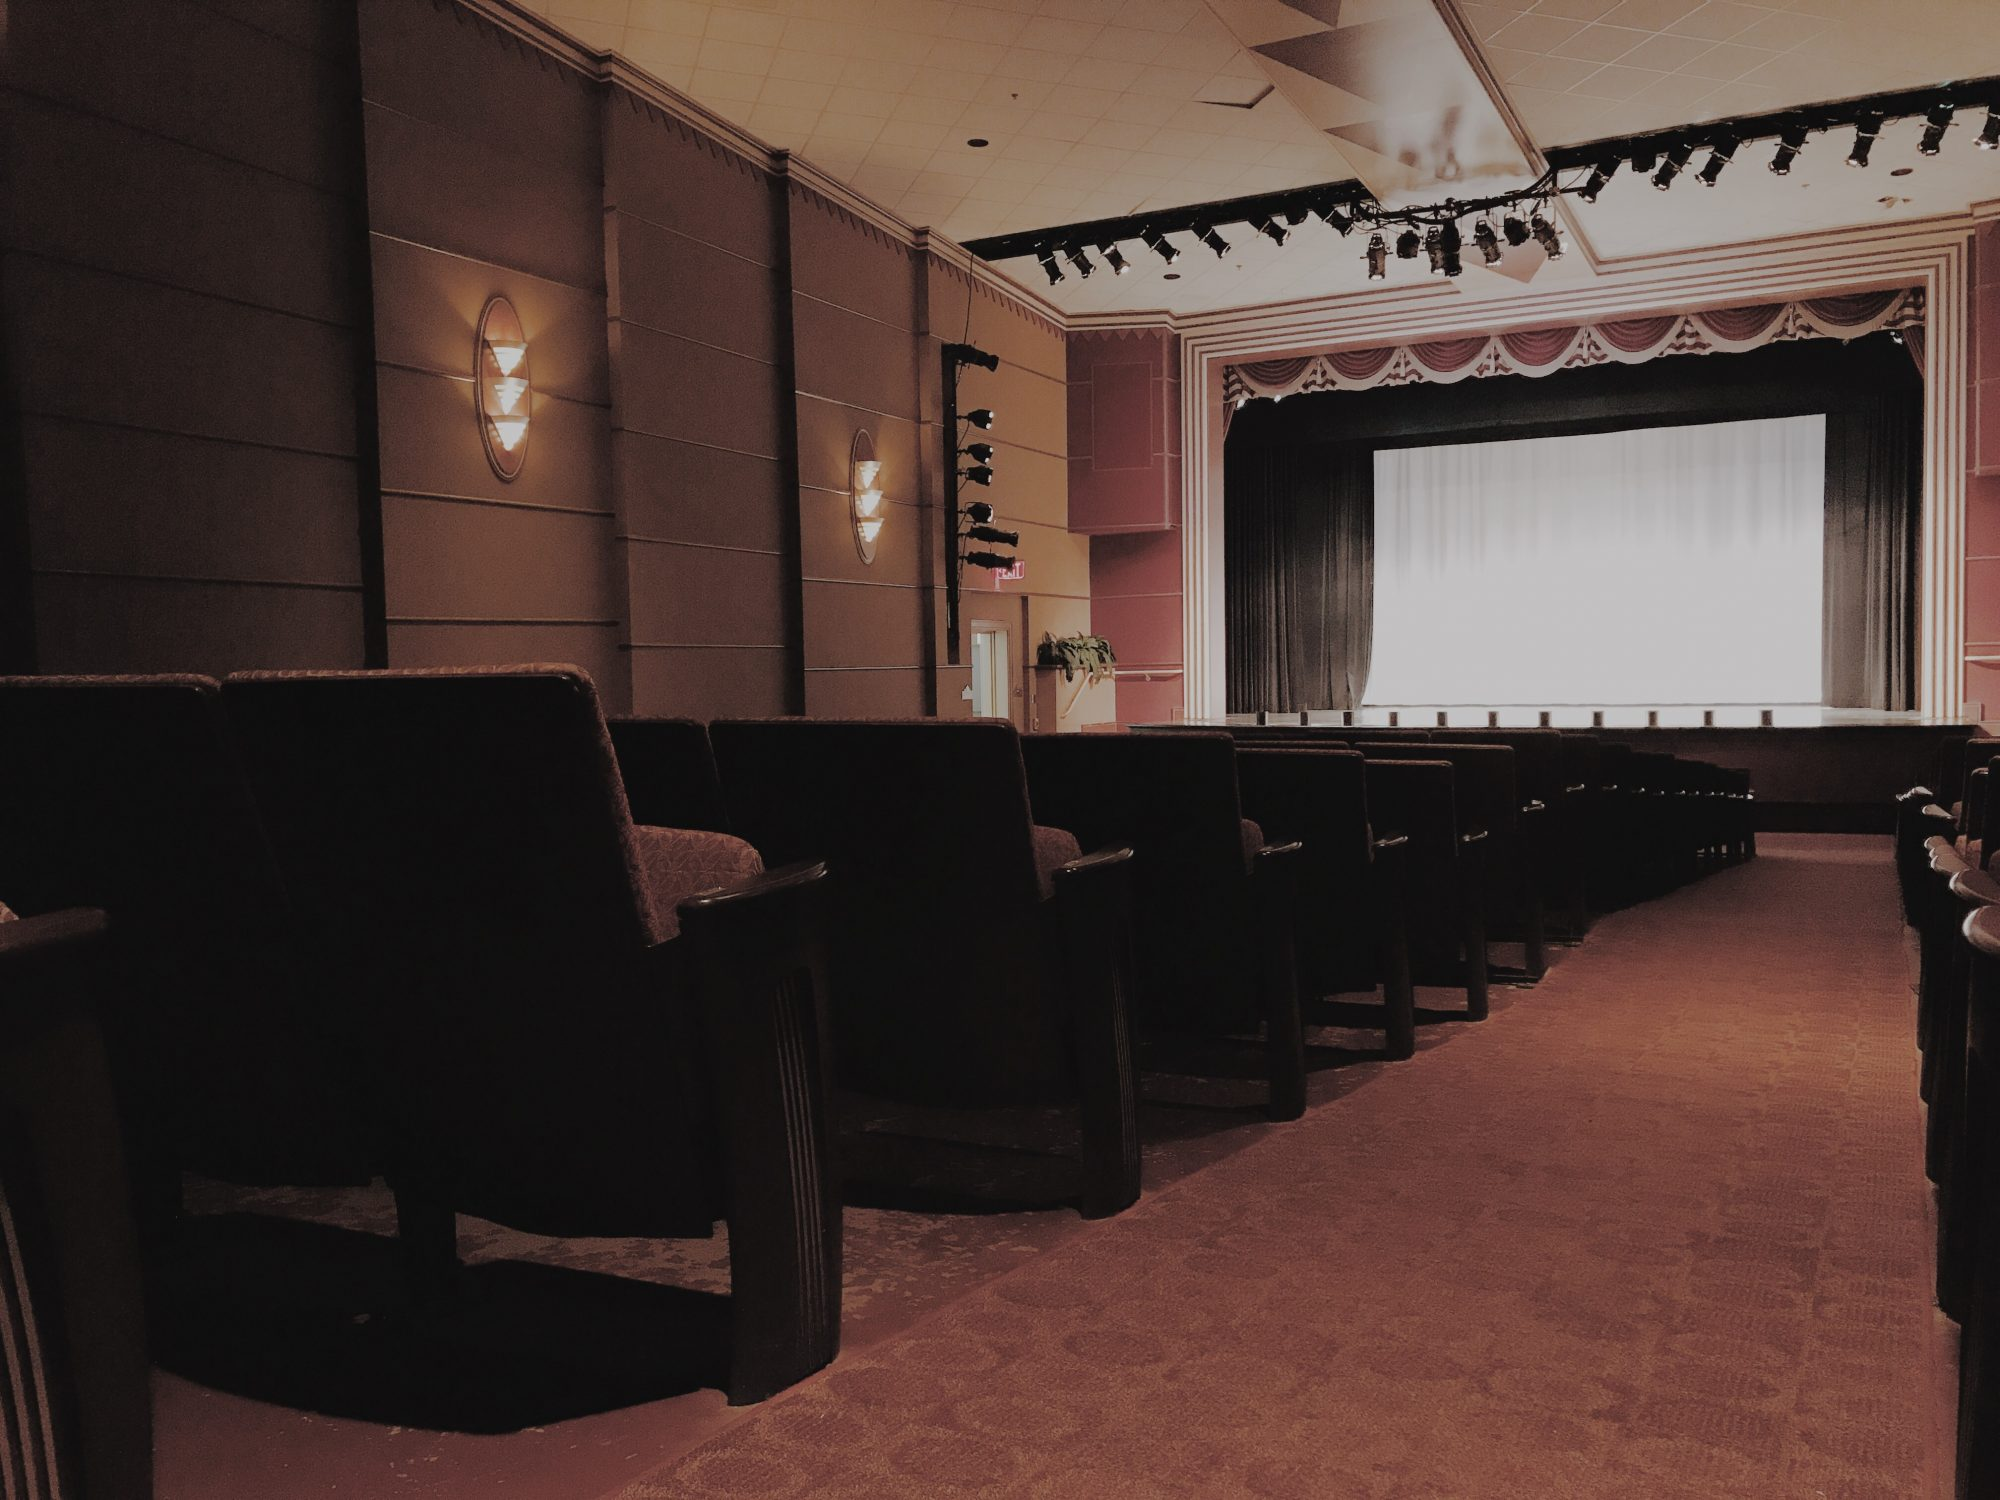 The Dallas Theater Is A Beautiful, Fully Restored, Art Deco Styled Theater  Dating From The 1940u0027s That Comfortably Seats Just Over 500 Guests.